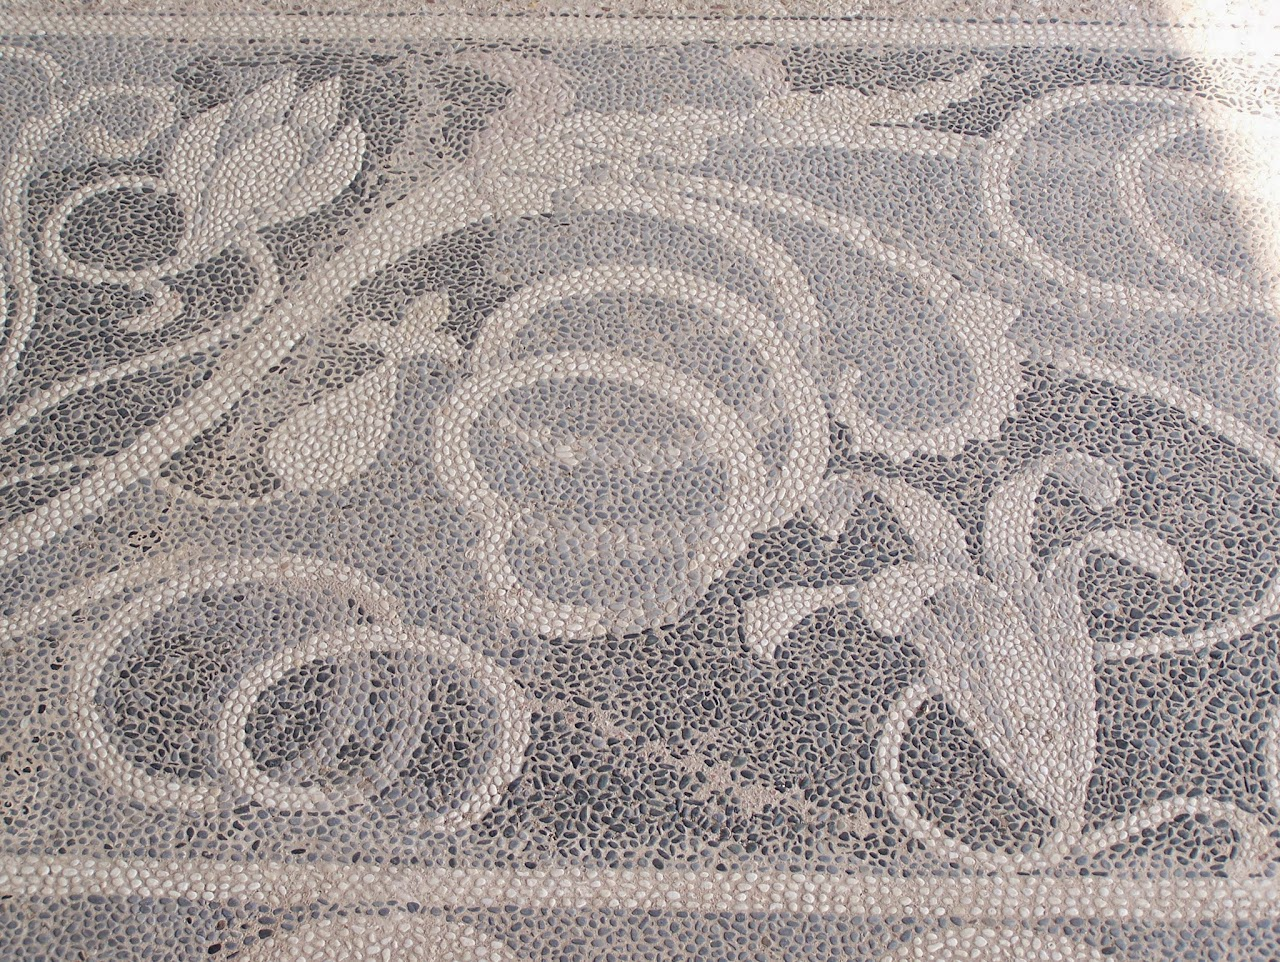 My Photos: Ancient Pebble Mosaics at Pella, Macedonia